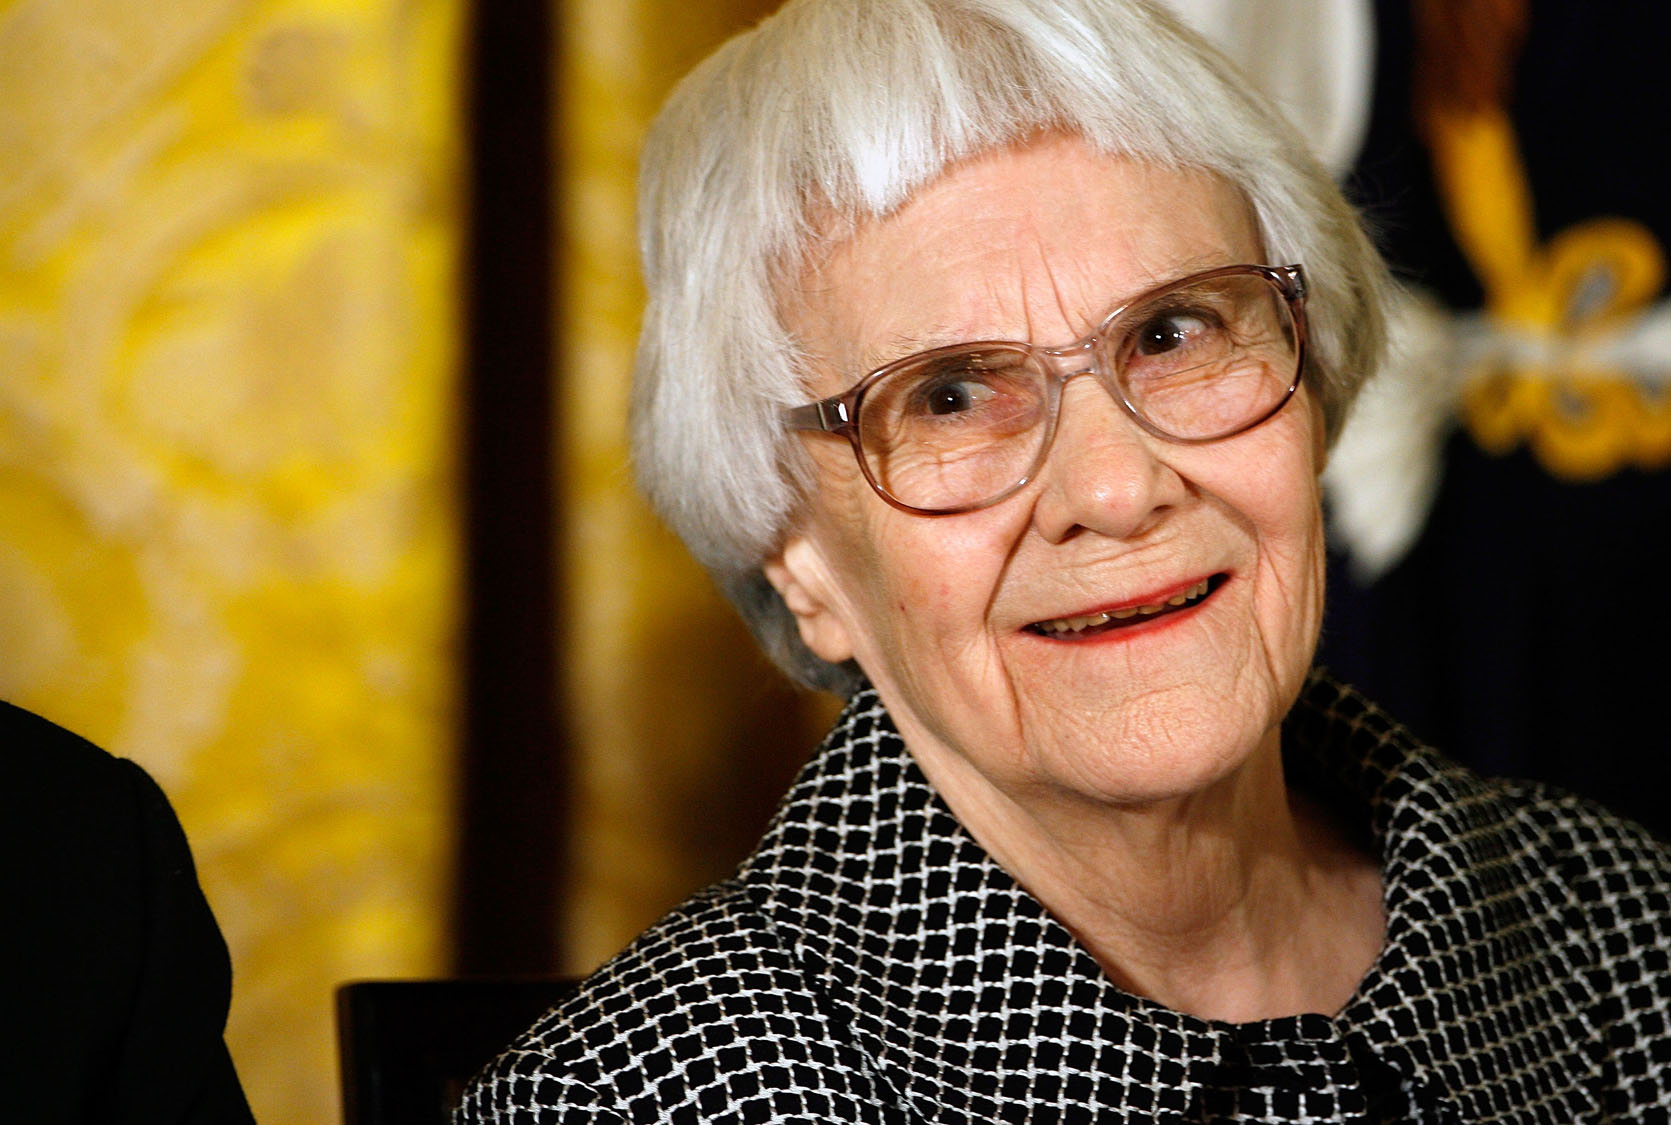 'To Kill a Mockingbird' author Harper Lee laid to rest